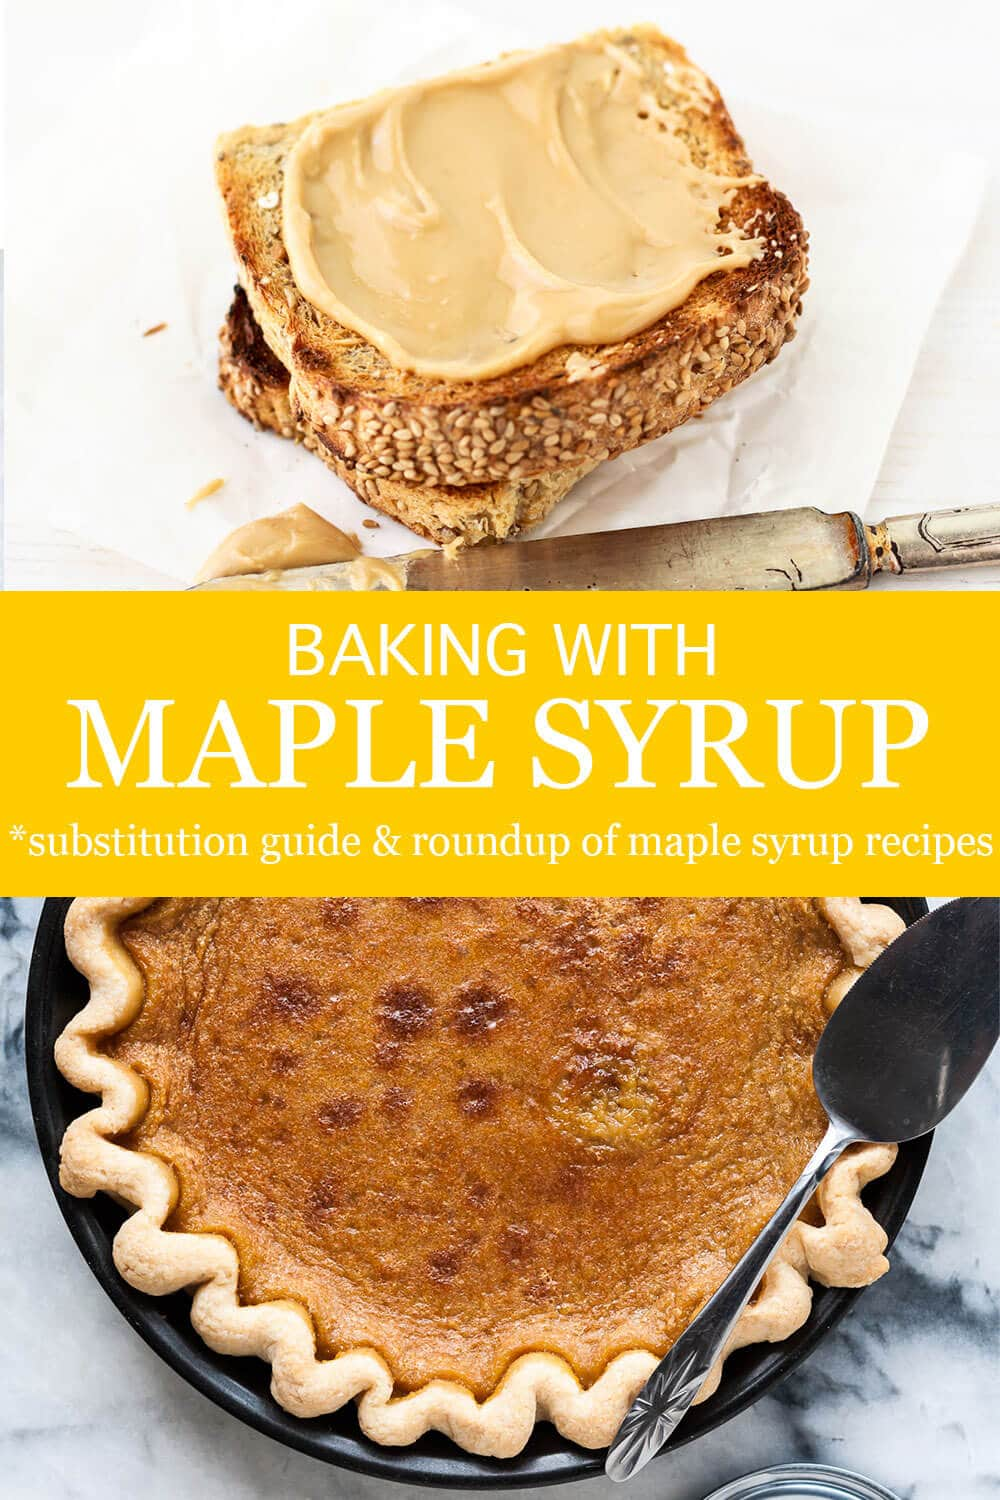 Maple syrup can be used to make maple butter, a spread for toast or even maple syrup pie